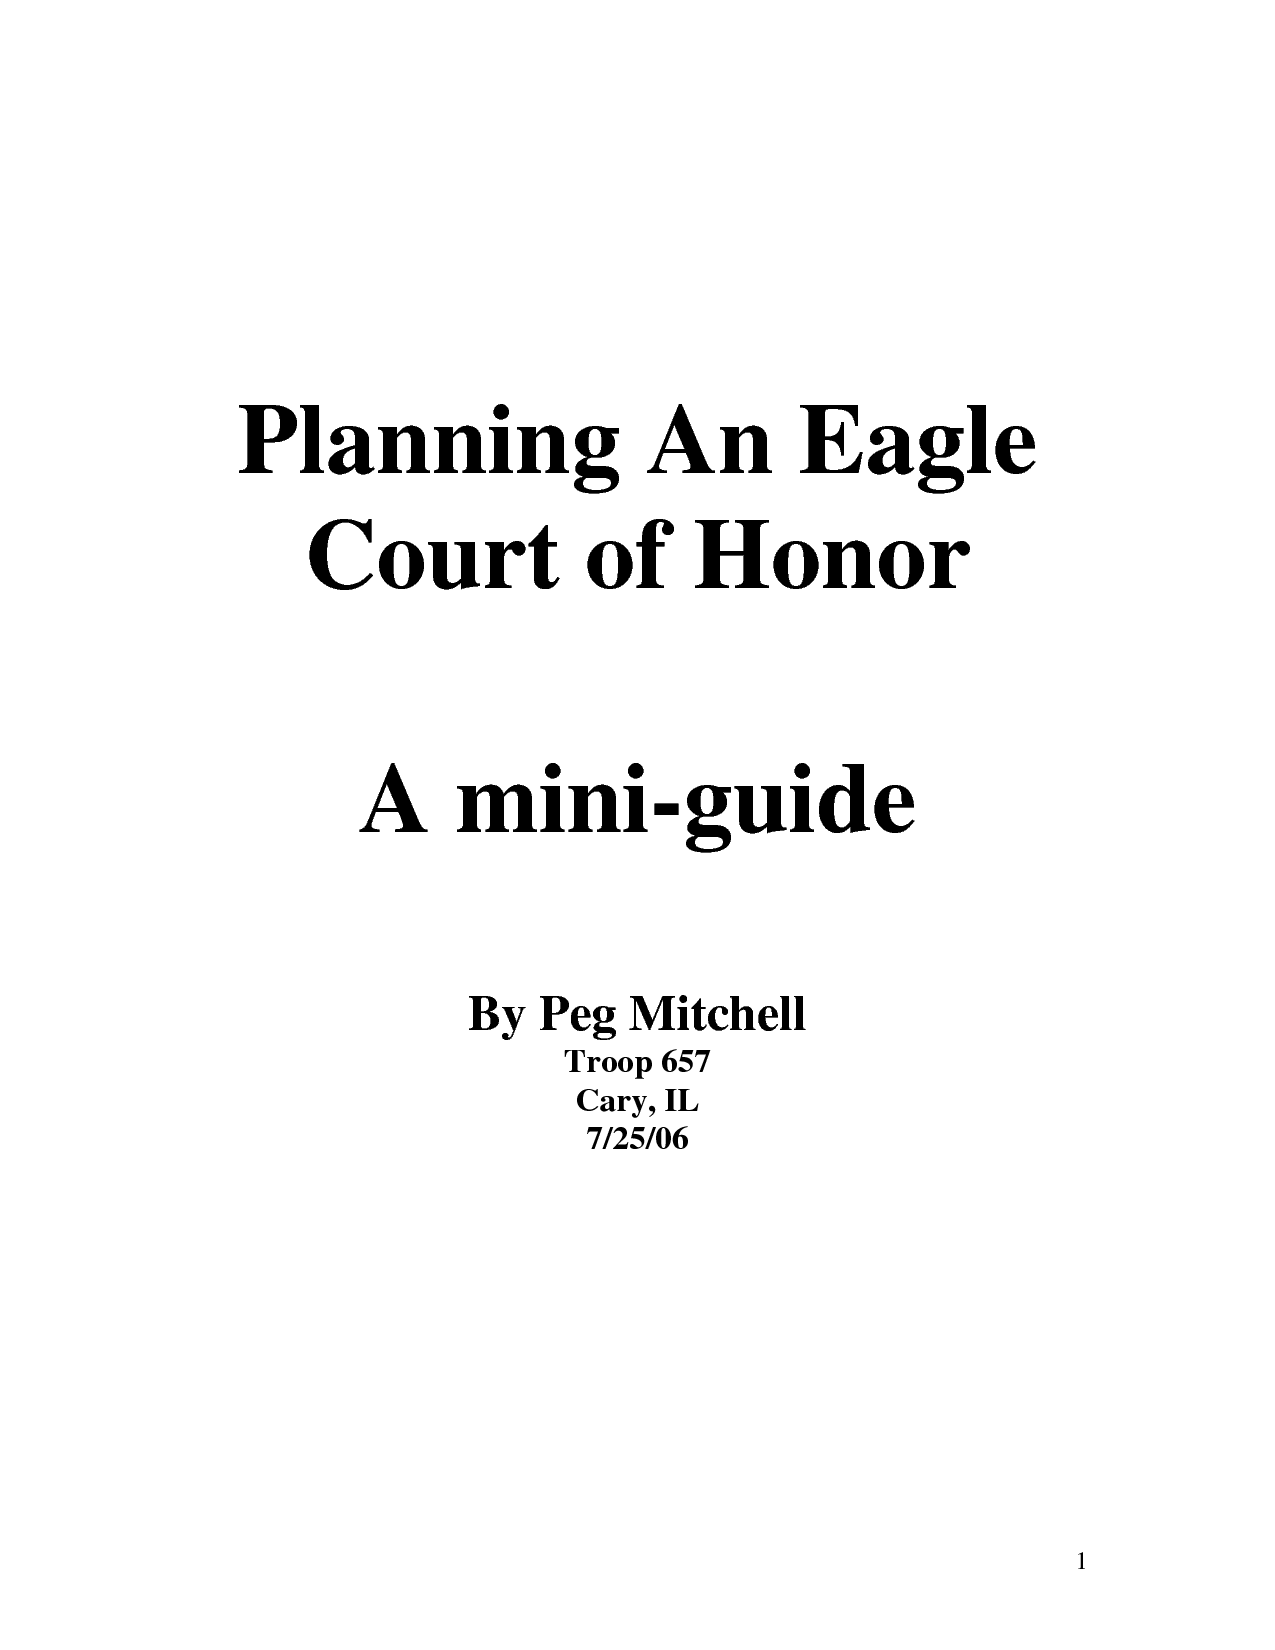 The Eagle Court Of Honor